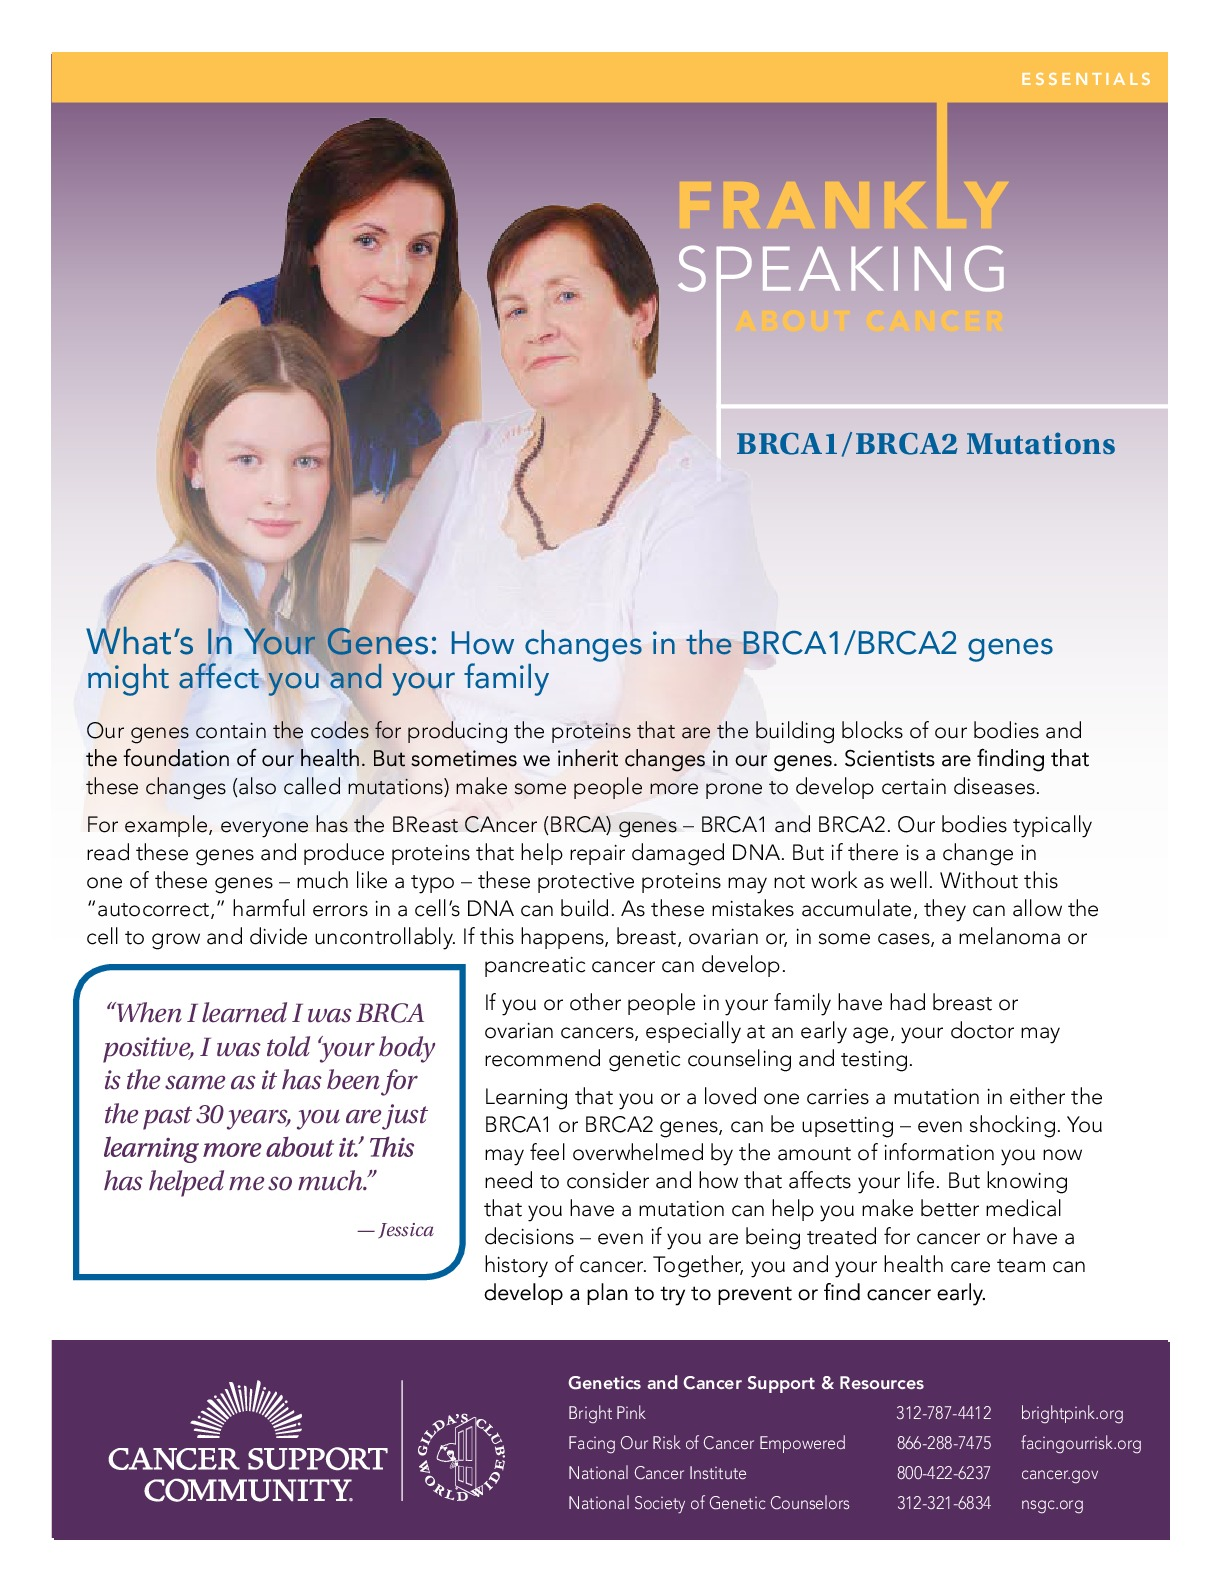 Frankly Speaking About Cancer: BRCA1/BRCA2 Mutations